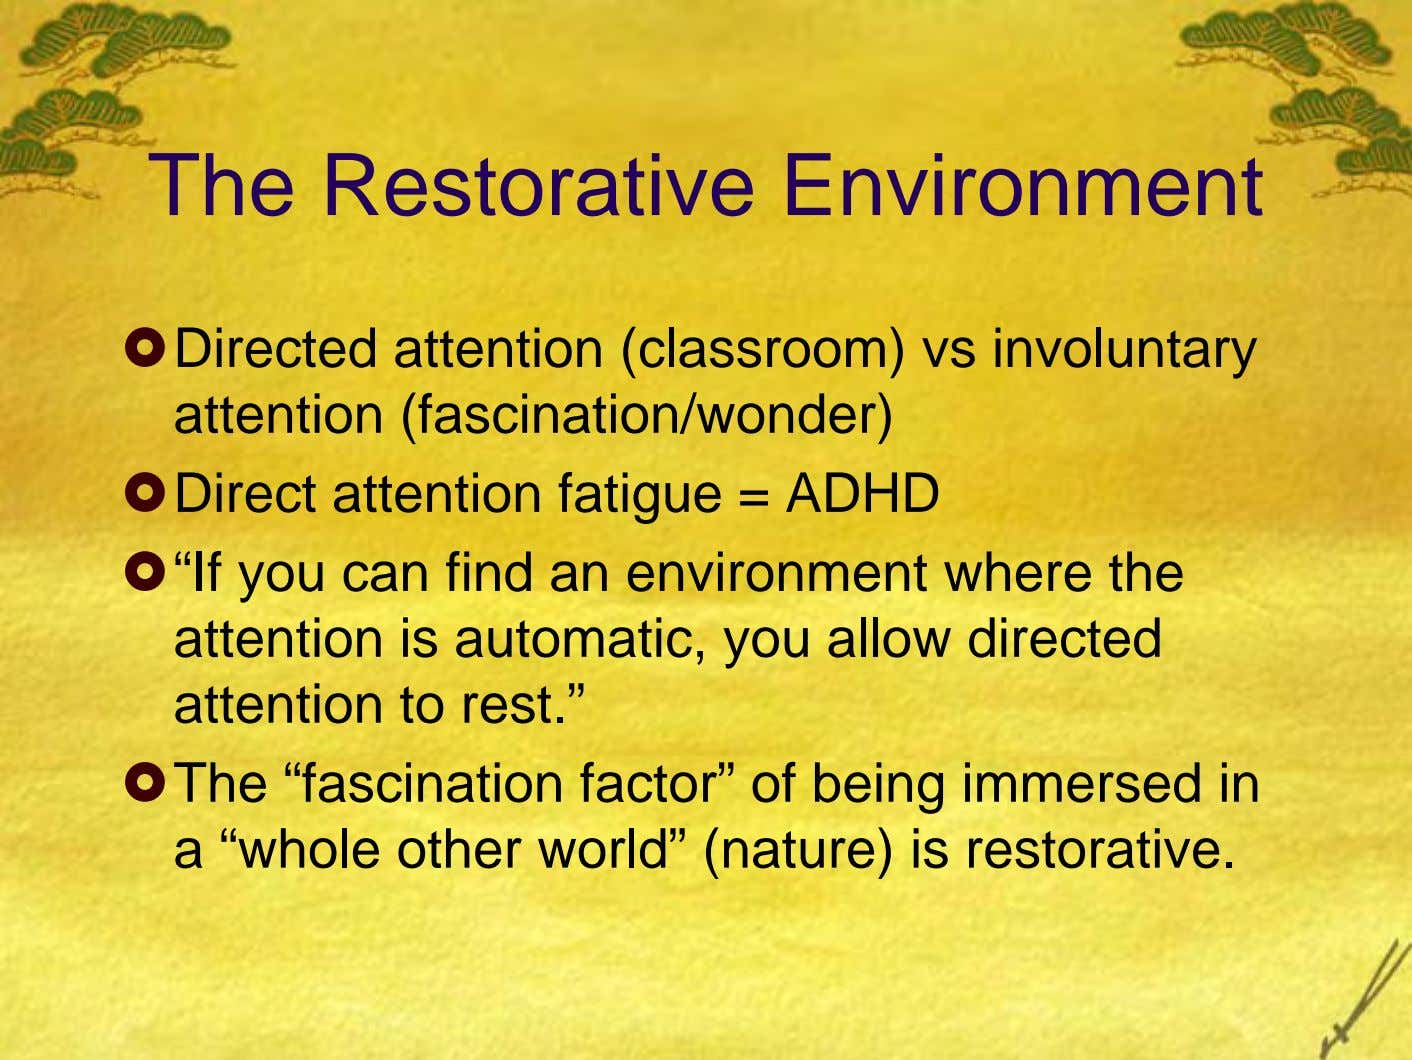 "The Restorative Environment Directed attention (classroom) vs involuntary attention (fascination/wonder) Direct attention fatigue = ADHD ""If"